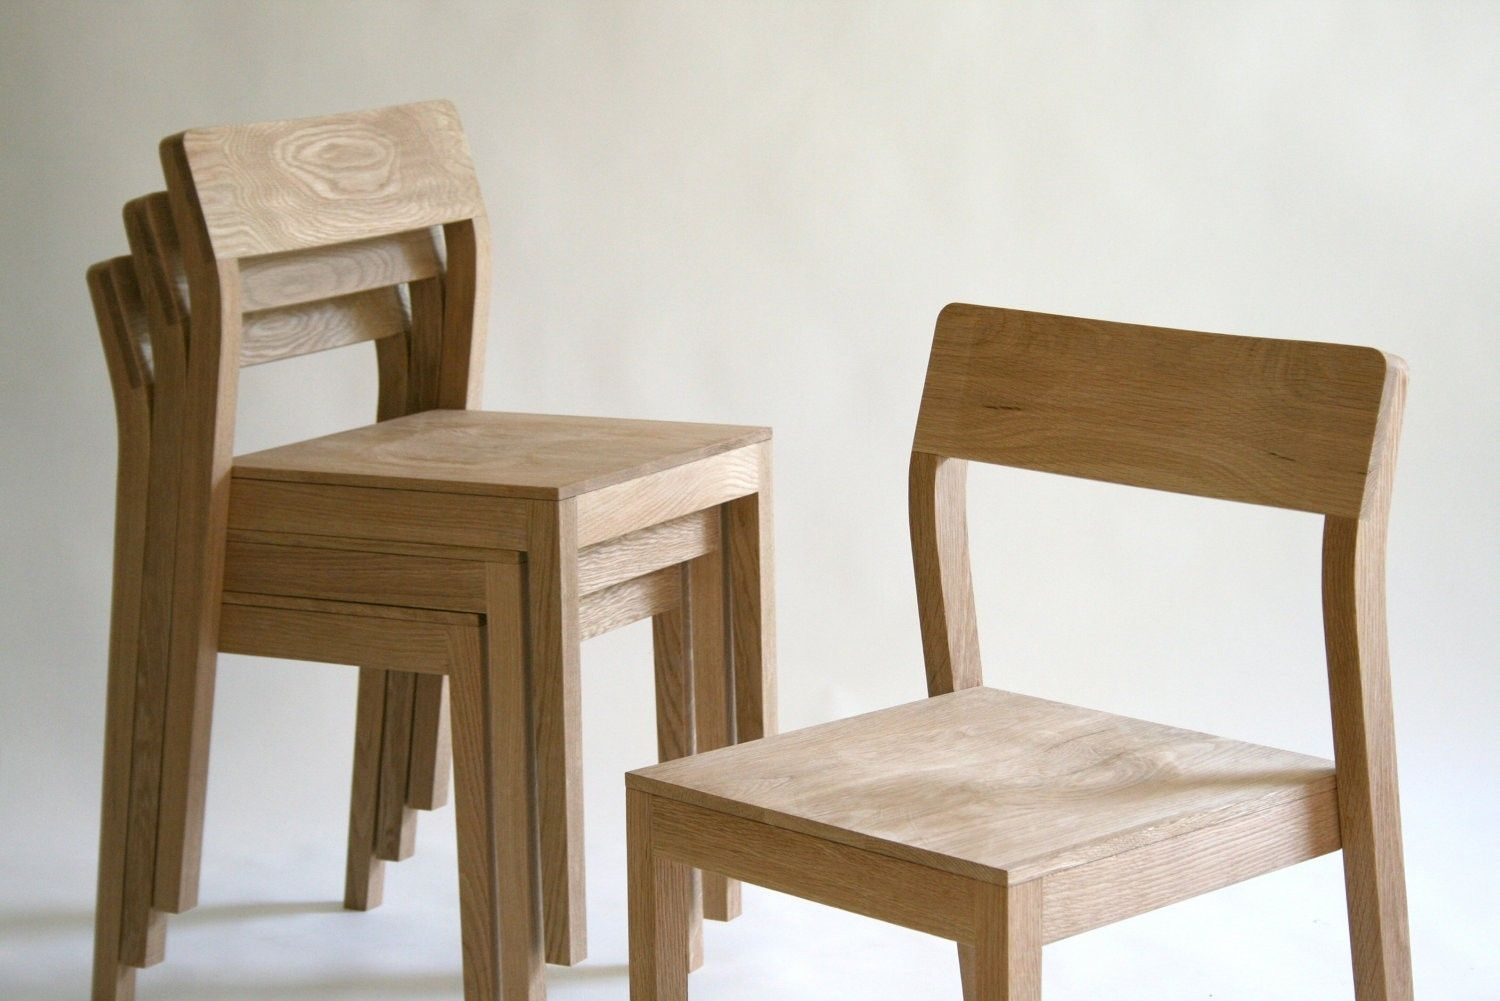 Hand Made Stackable Wood Dining Chair by Kapel Designs